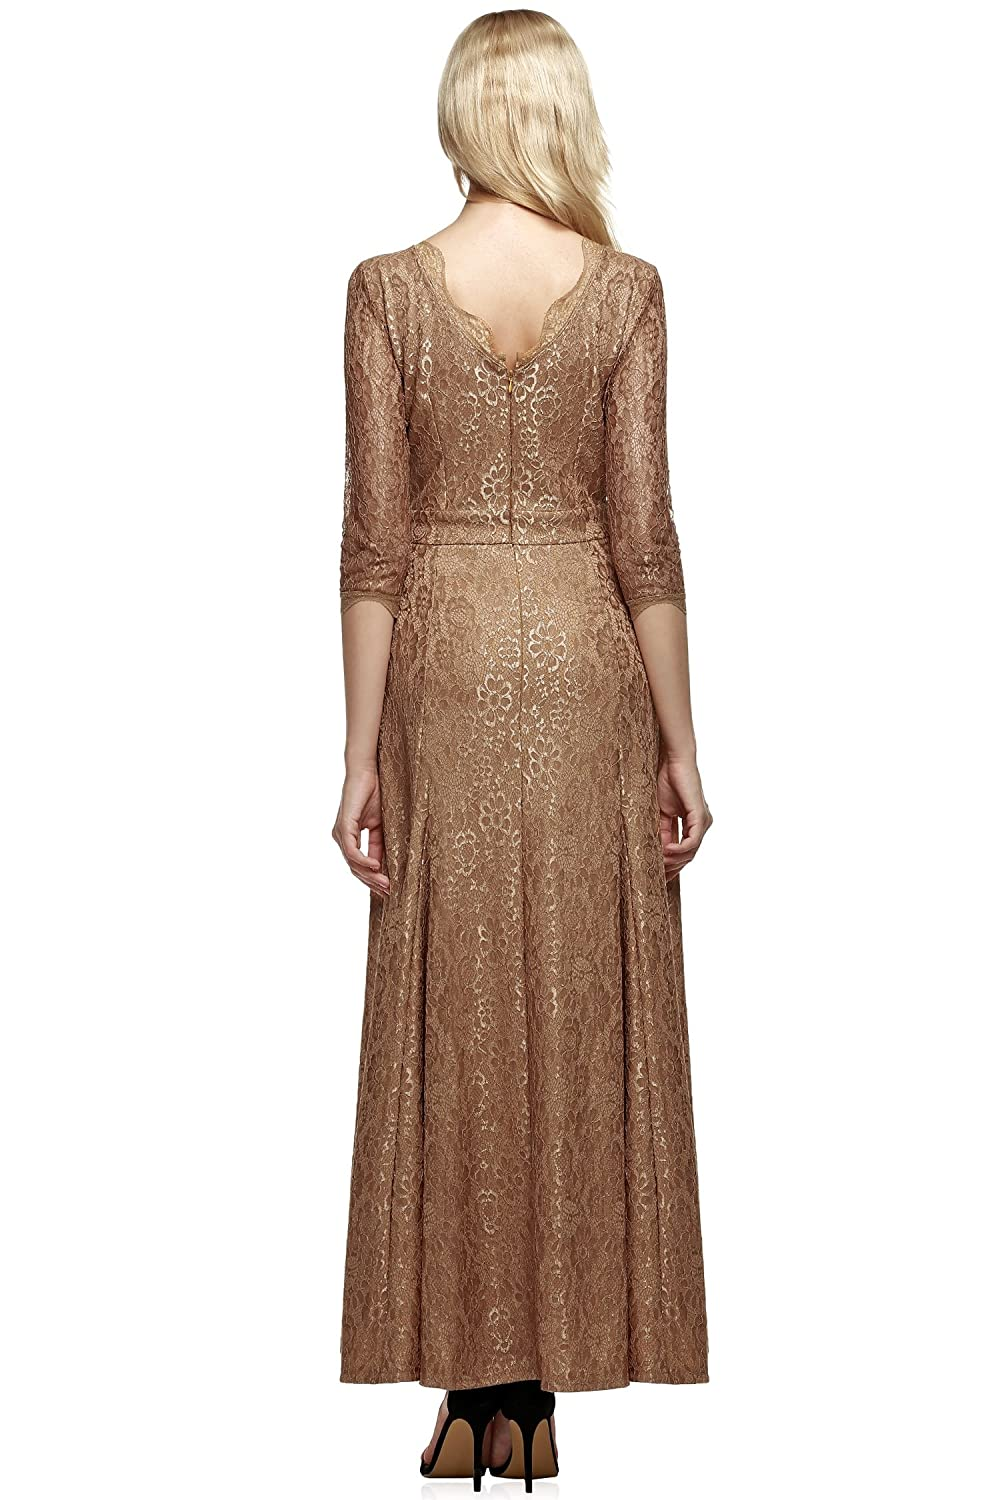 Amazon.com: ANGVNS Women Lace 2/3 Sleeve Bridesmaid Homecoming Gown Dress, Size X-Small, Brown: Clothing